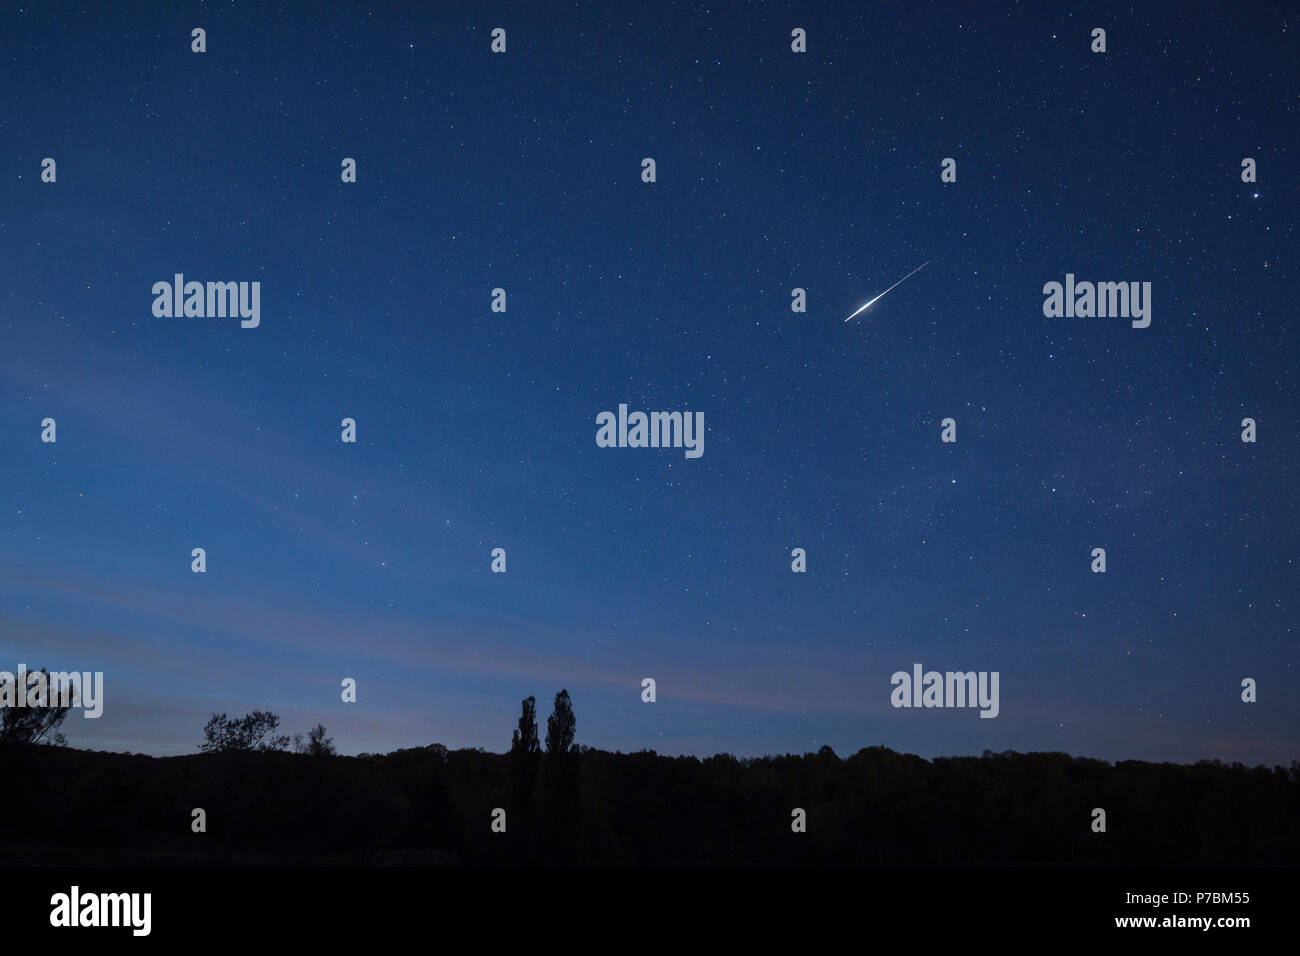 Iridium Flare, Satellite Iridium 81, May 17th, 2017, Steinertsee, Natural park Frau-Holle-Land, Hesse, Germany Stock Photo